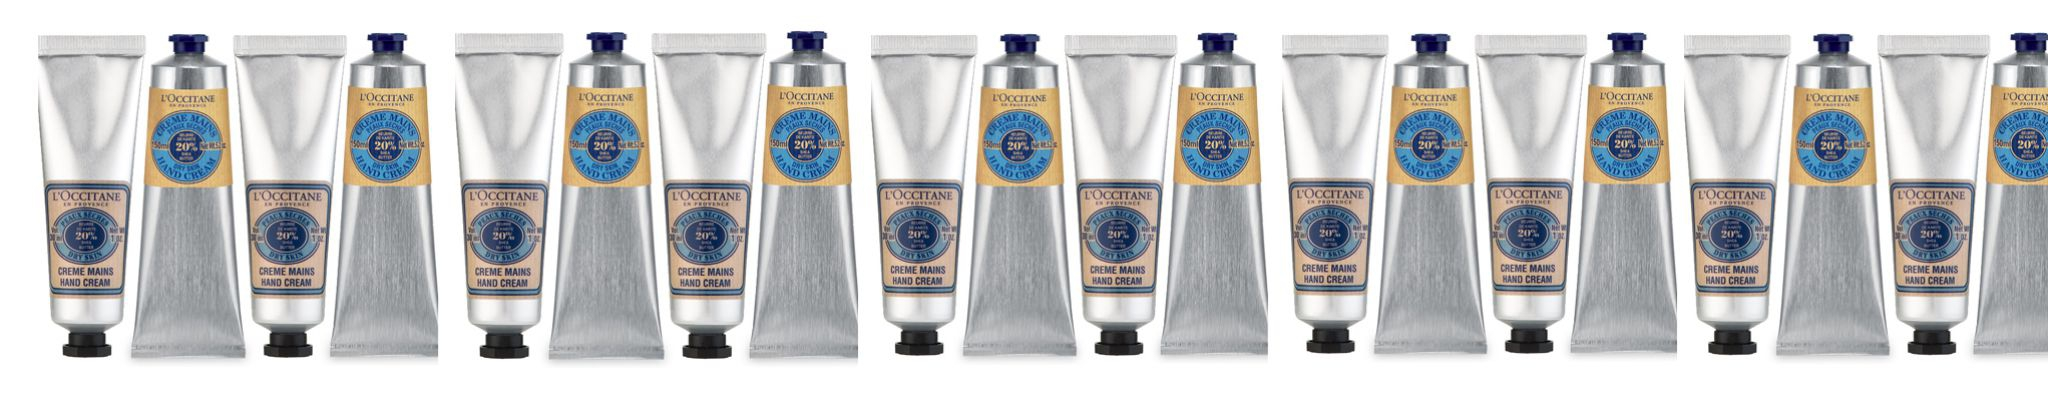 Shea Butter Hand Cream Celebrates its 20th Anniversary